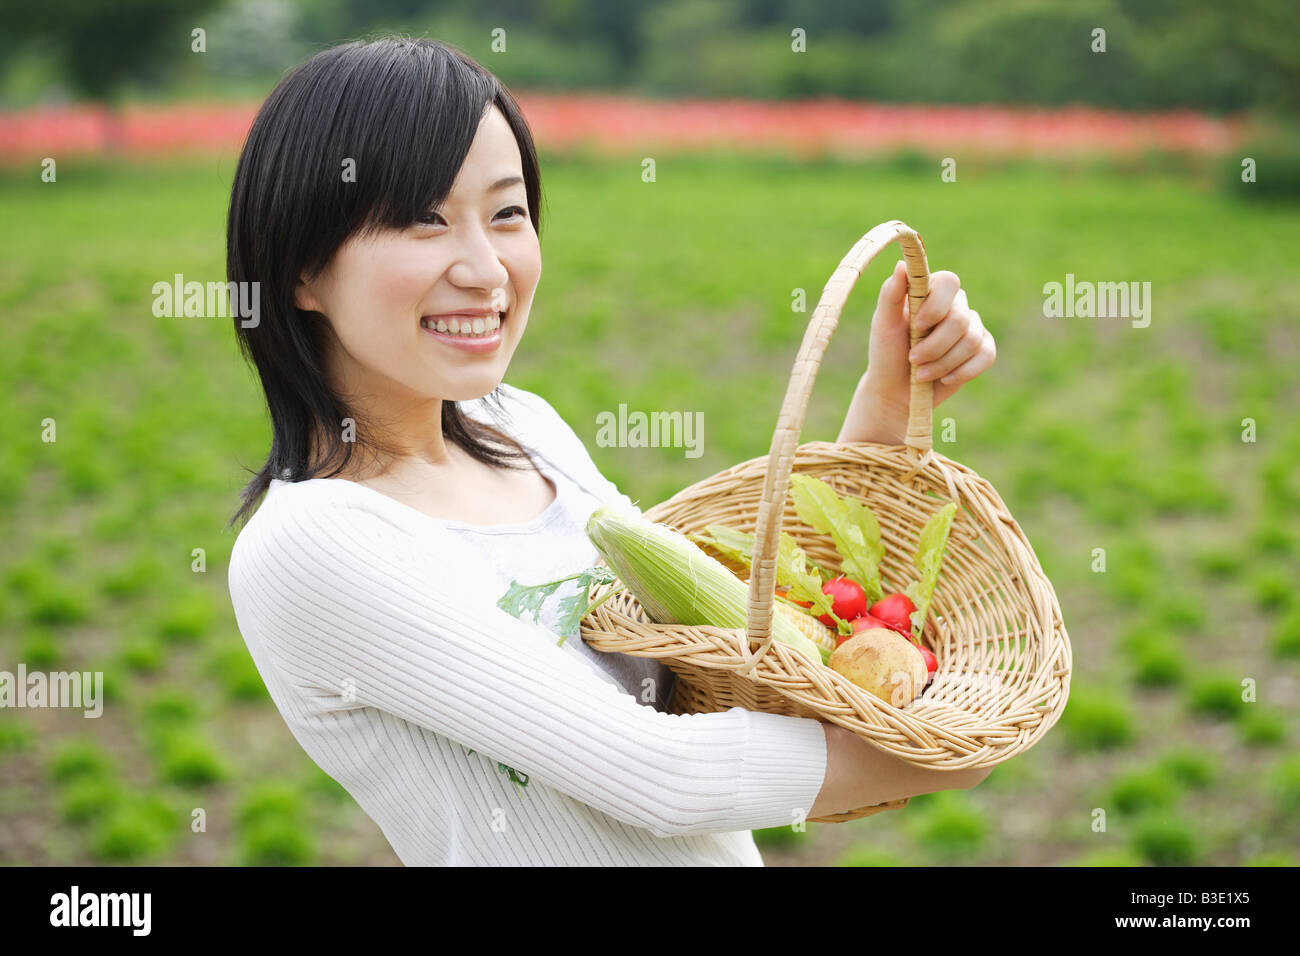 Young smiling woman holding vegetables basket Stock Photo